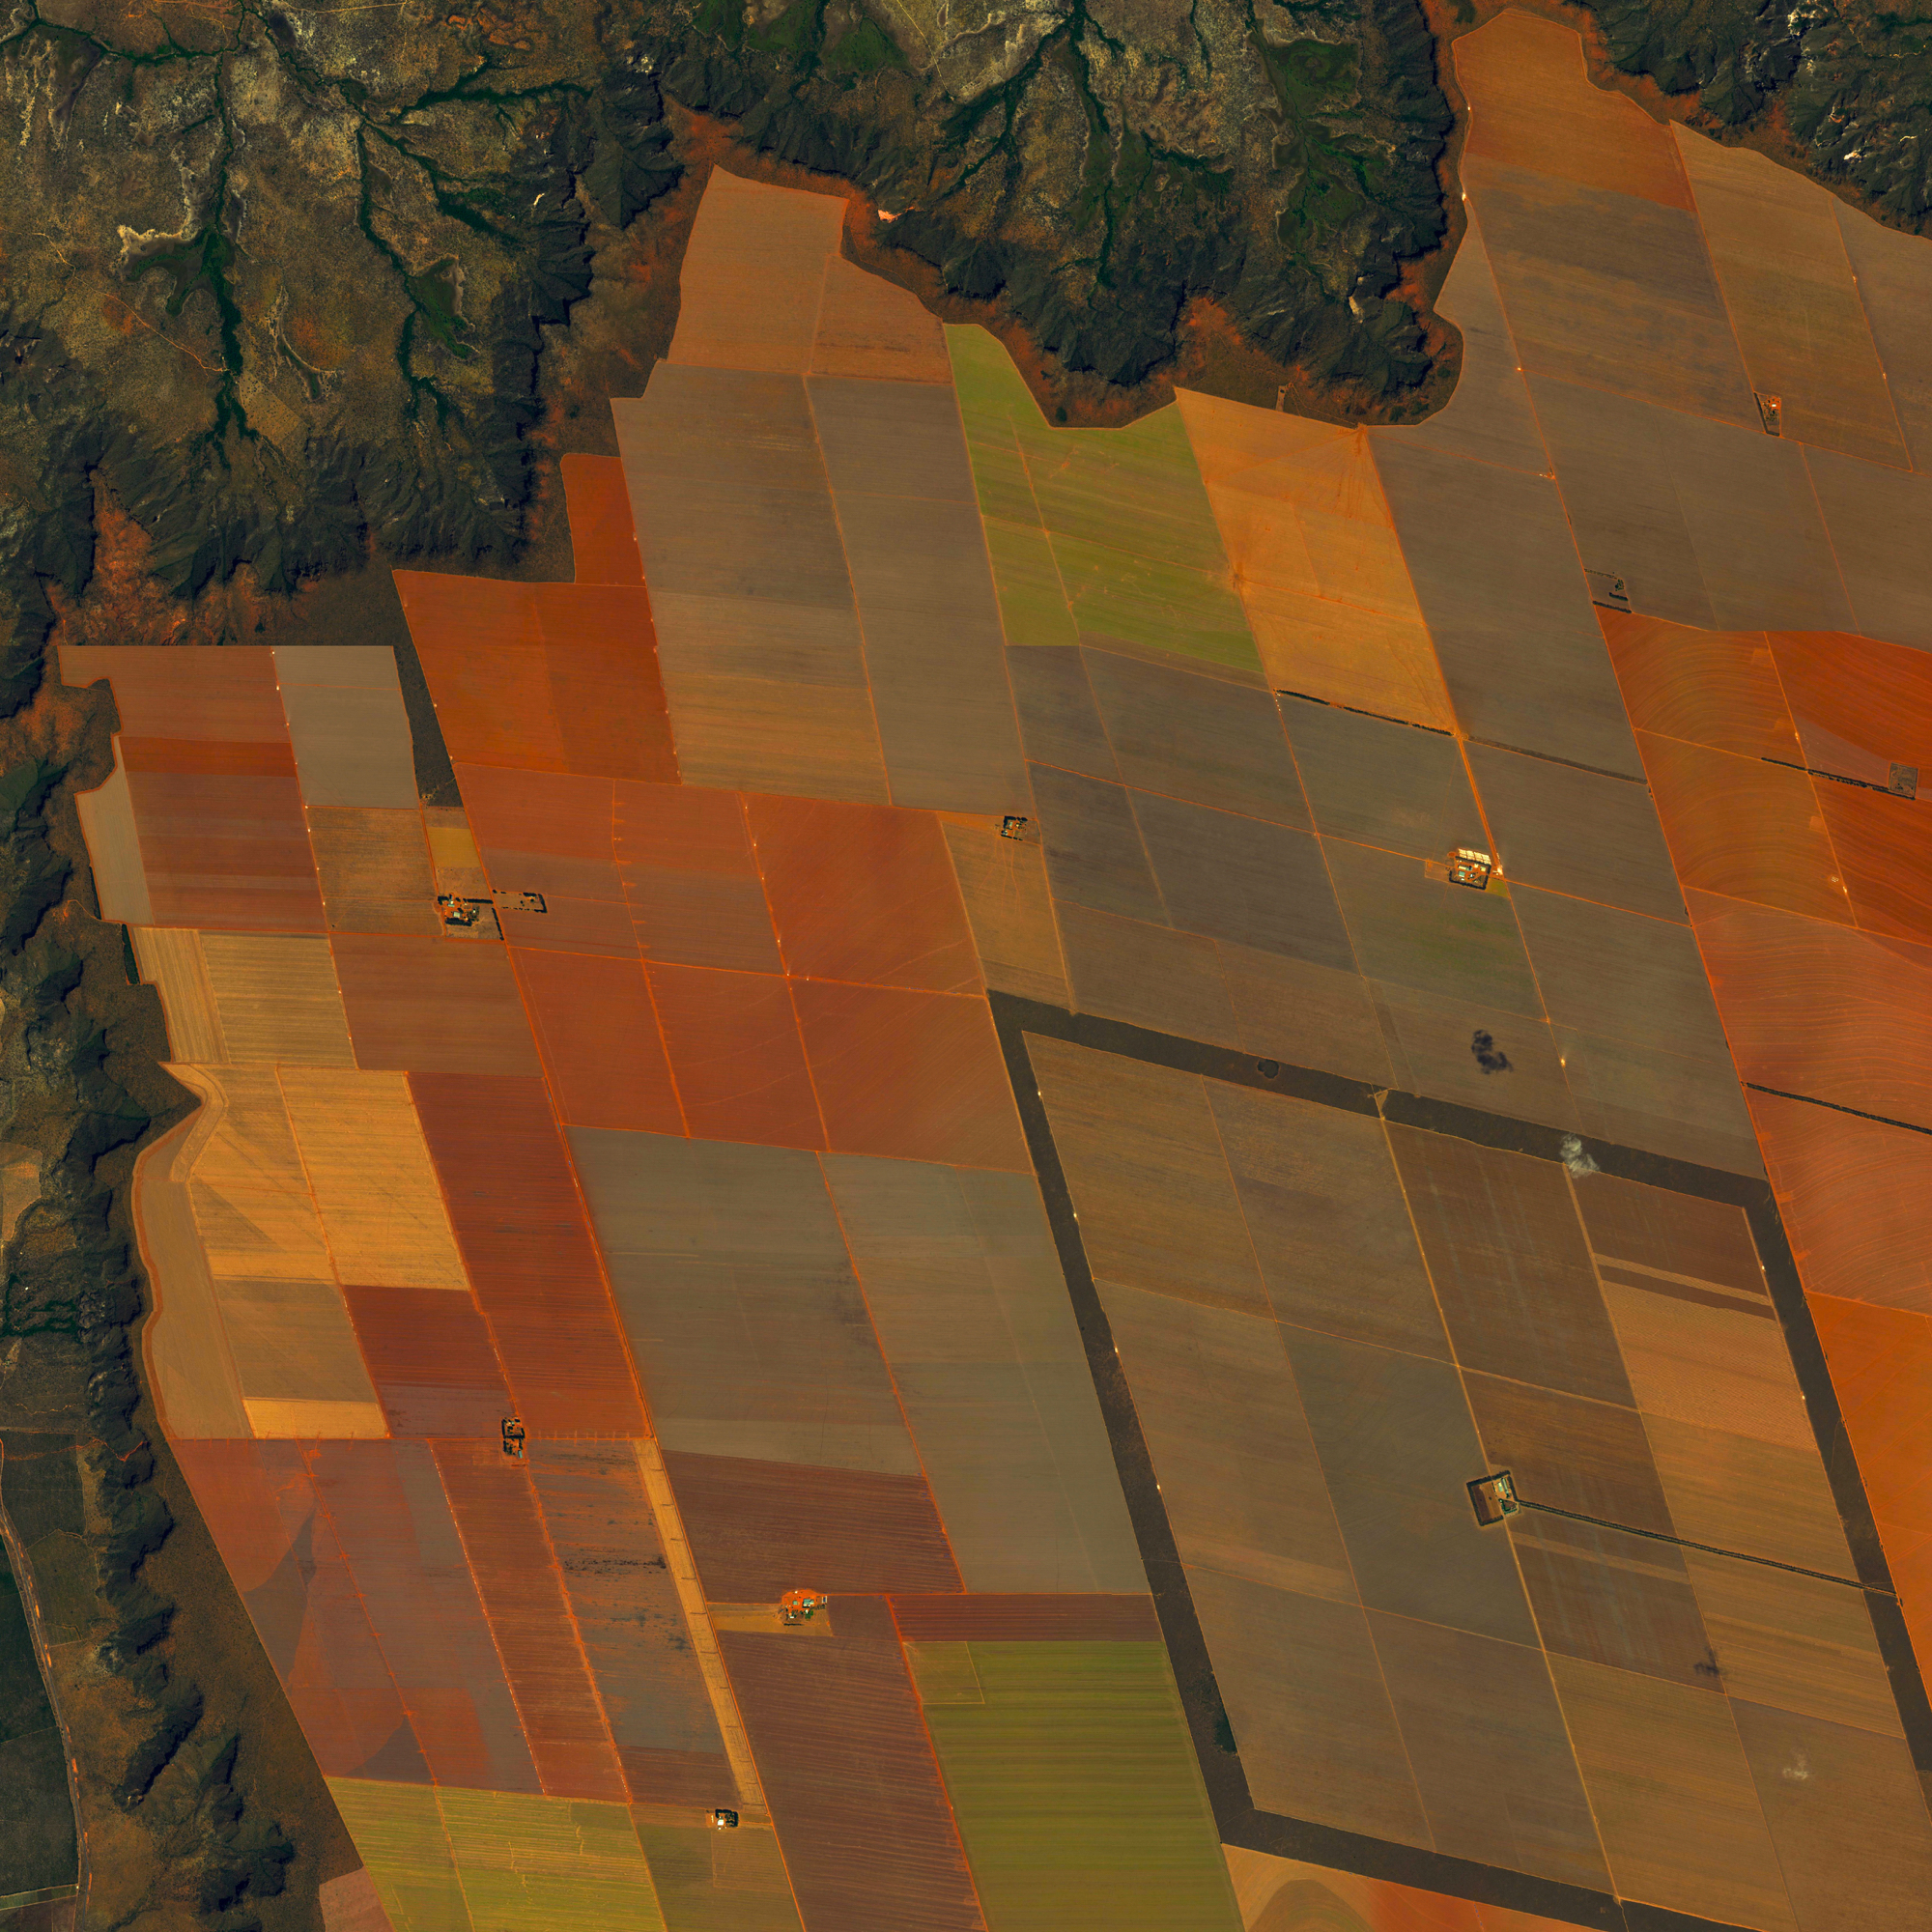 7/6/2015   Soybean fields   São Domingos, Brazil / São Desidério, Brazil  12°22′S 44°58′W    Soybeans fields straddle the border of São Domingos and São Desidério, Brazil. In 2014, Brazil became the world's top producer of the crop with a harvest of 90 million metric tons.